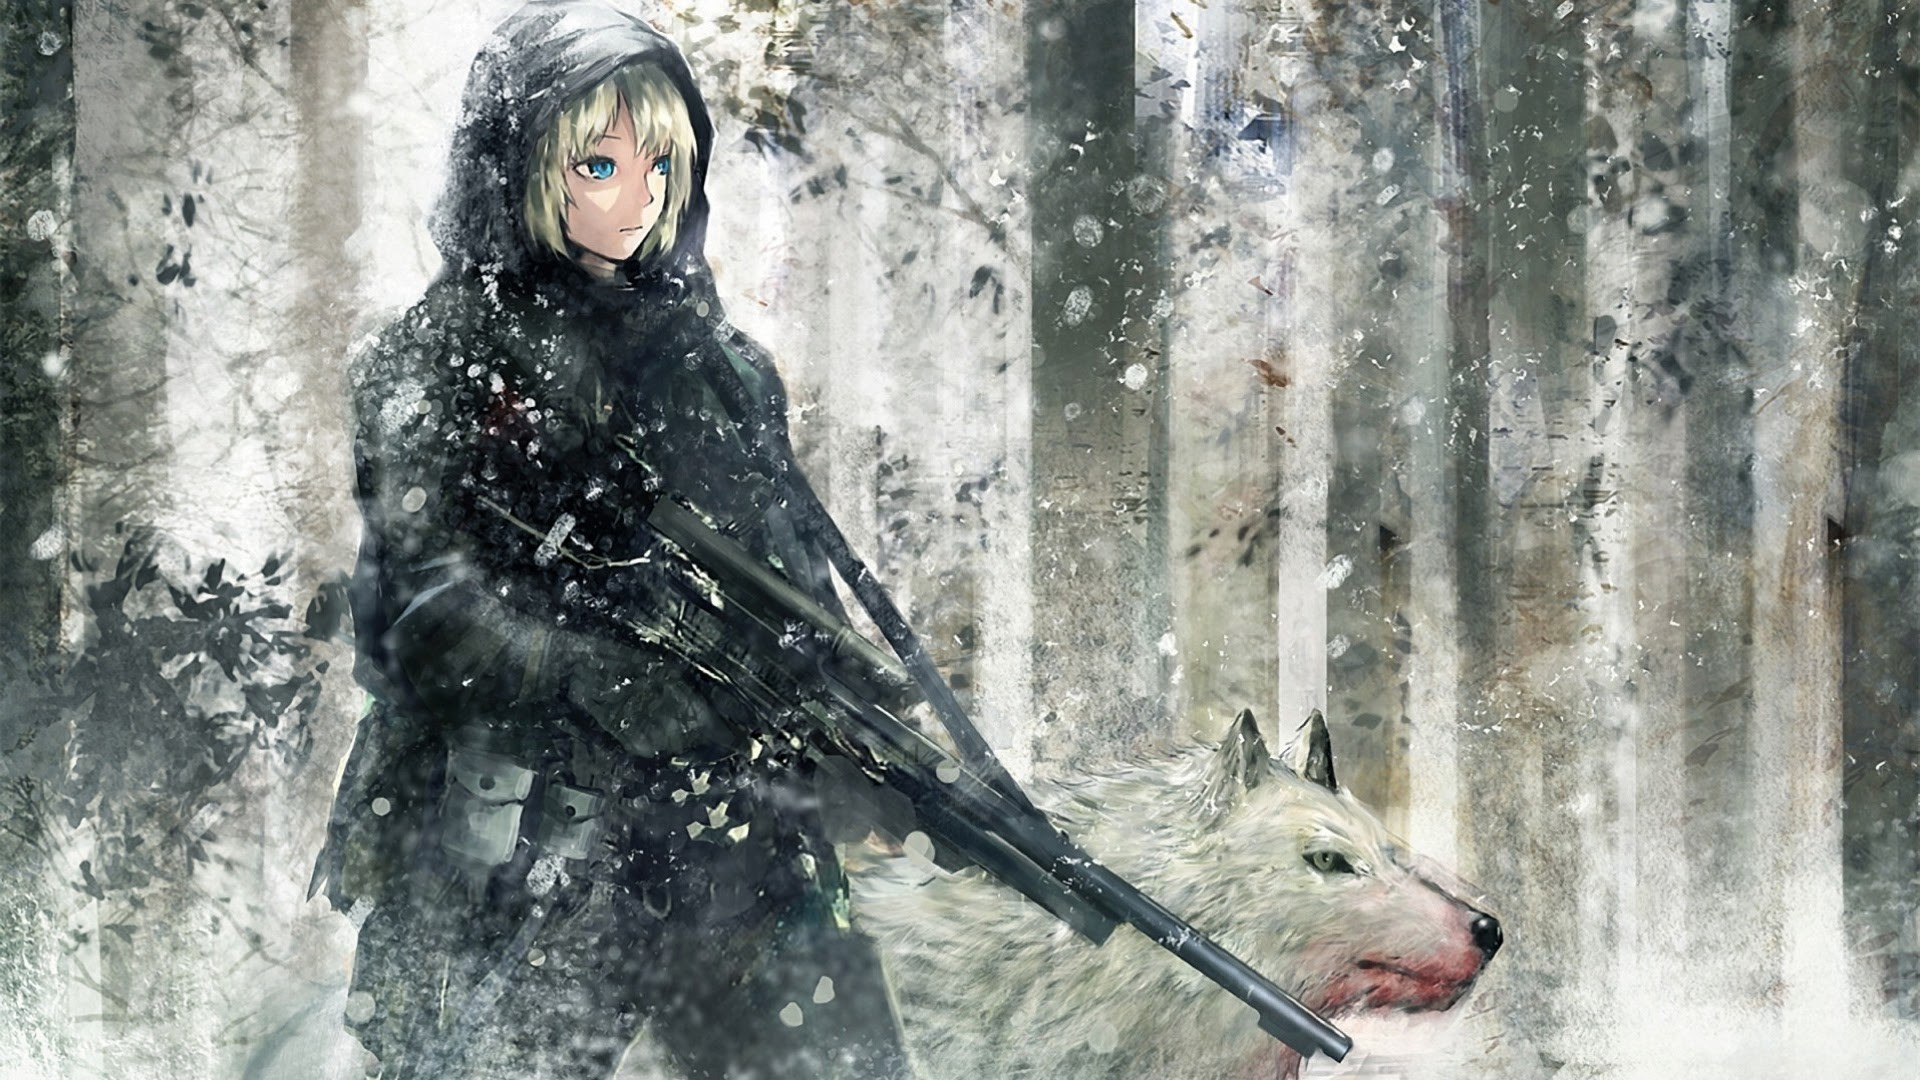 1920x1080 anime soldier girl rifle white wolf hd wallpaper